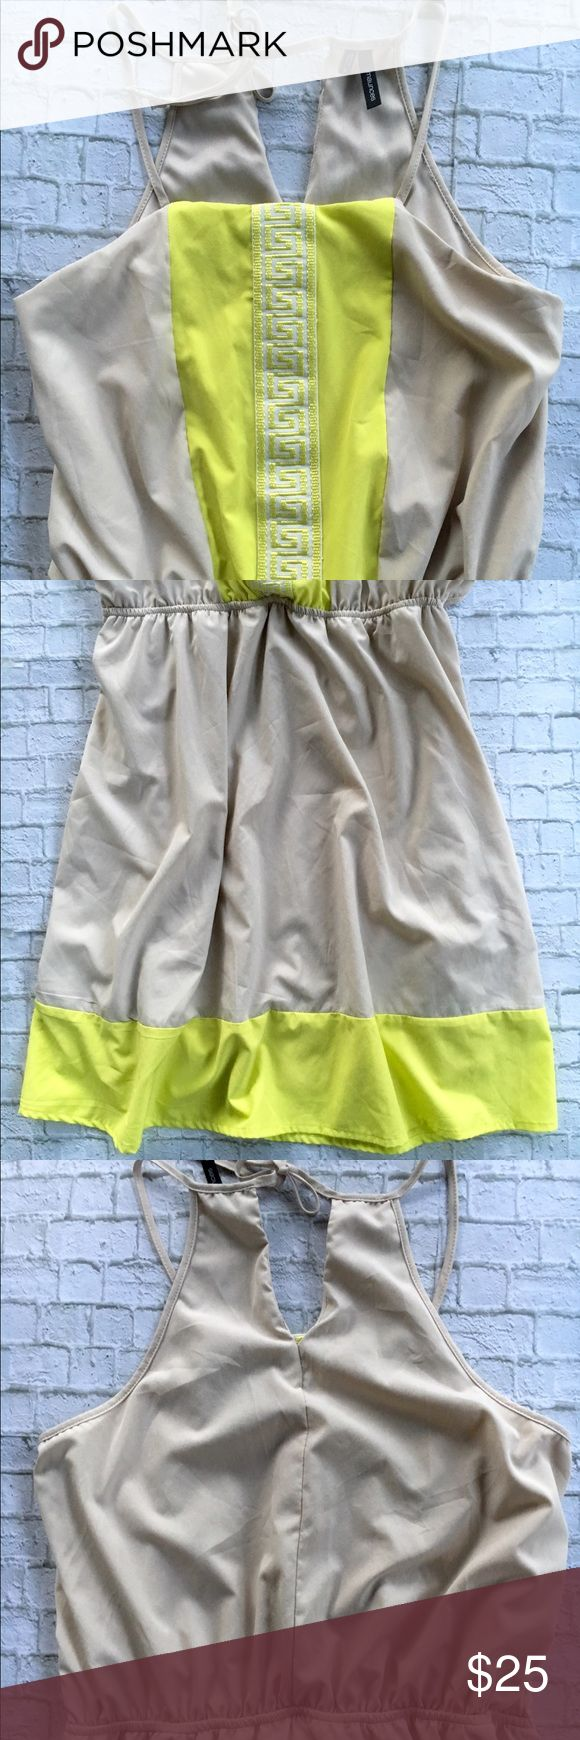 Maurice's Neon Yellow & Cream Sleeveless Dress - Sleeveless, ties at back of neck - Neon yellow details at front and hem - Elastic waistband - 88% polyester; 12% spandex Maurices Dresses Mini